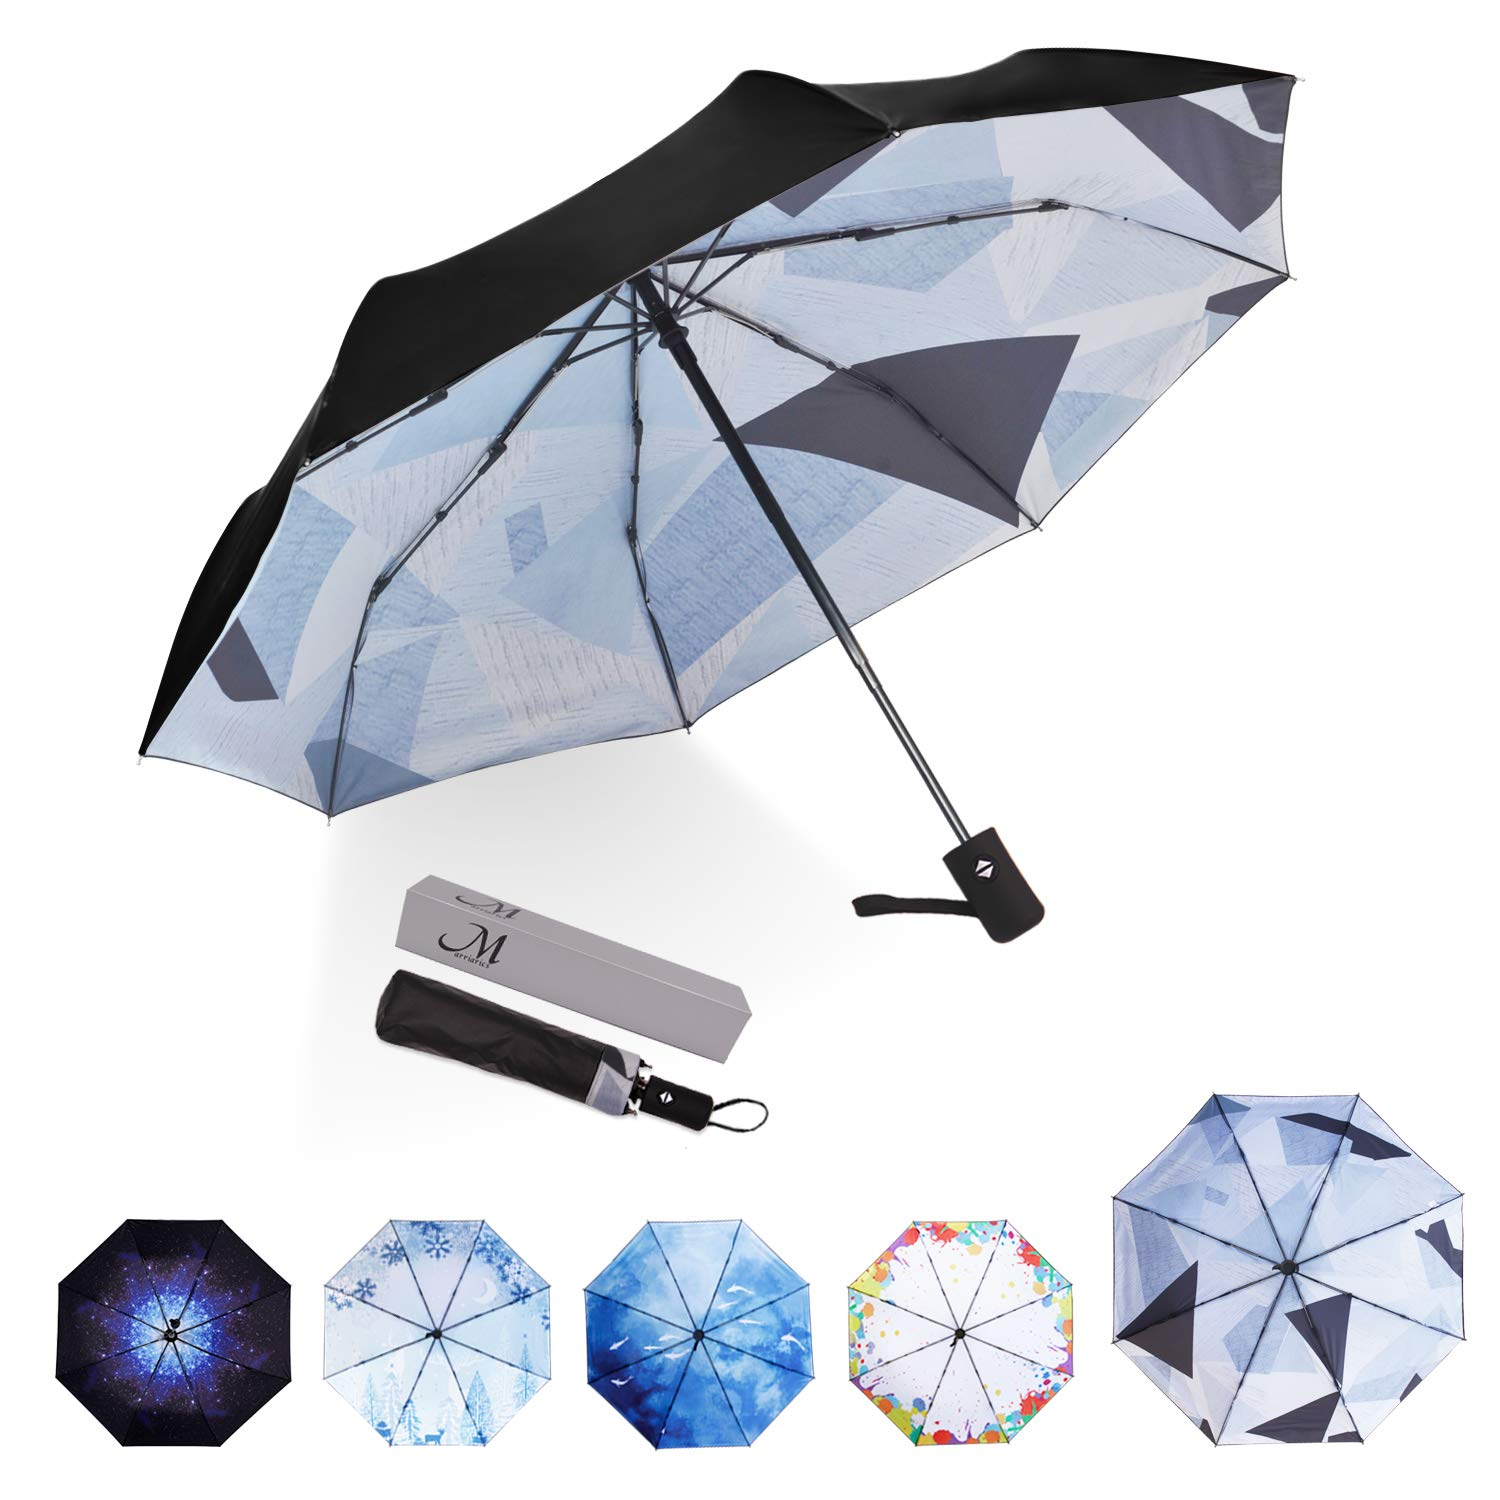 1ba855e0376e6 Amazon.com: Marriarics Travel Umbrella Windproof, Black Glue Anti UV  Coating, Compact Folding Umbrellas for Women Men, Auto Open Close (Spliced  Triangle): ...